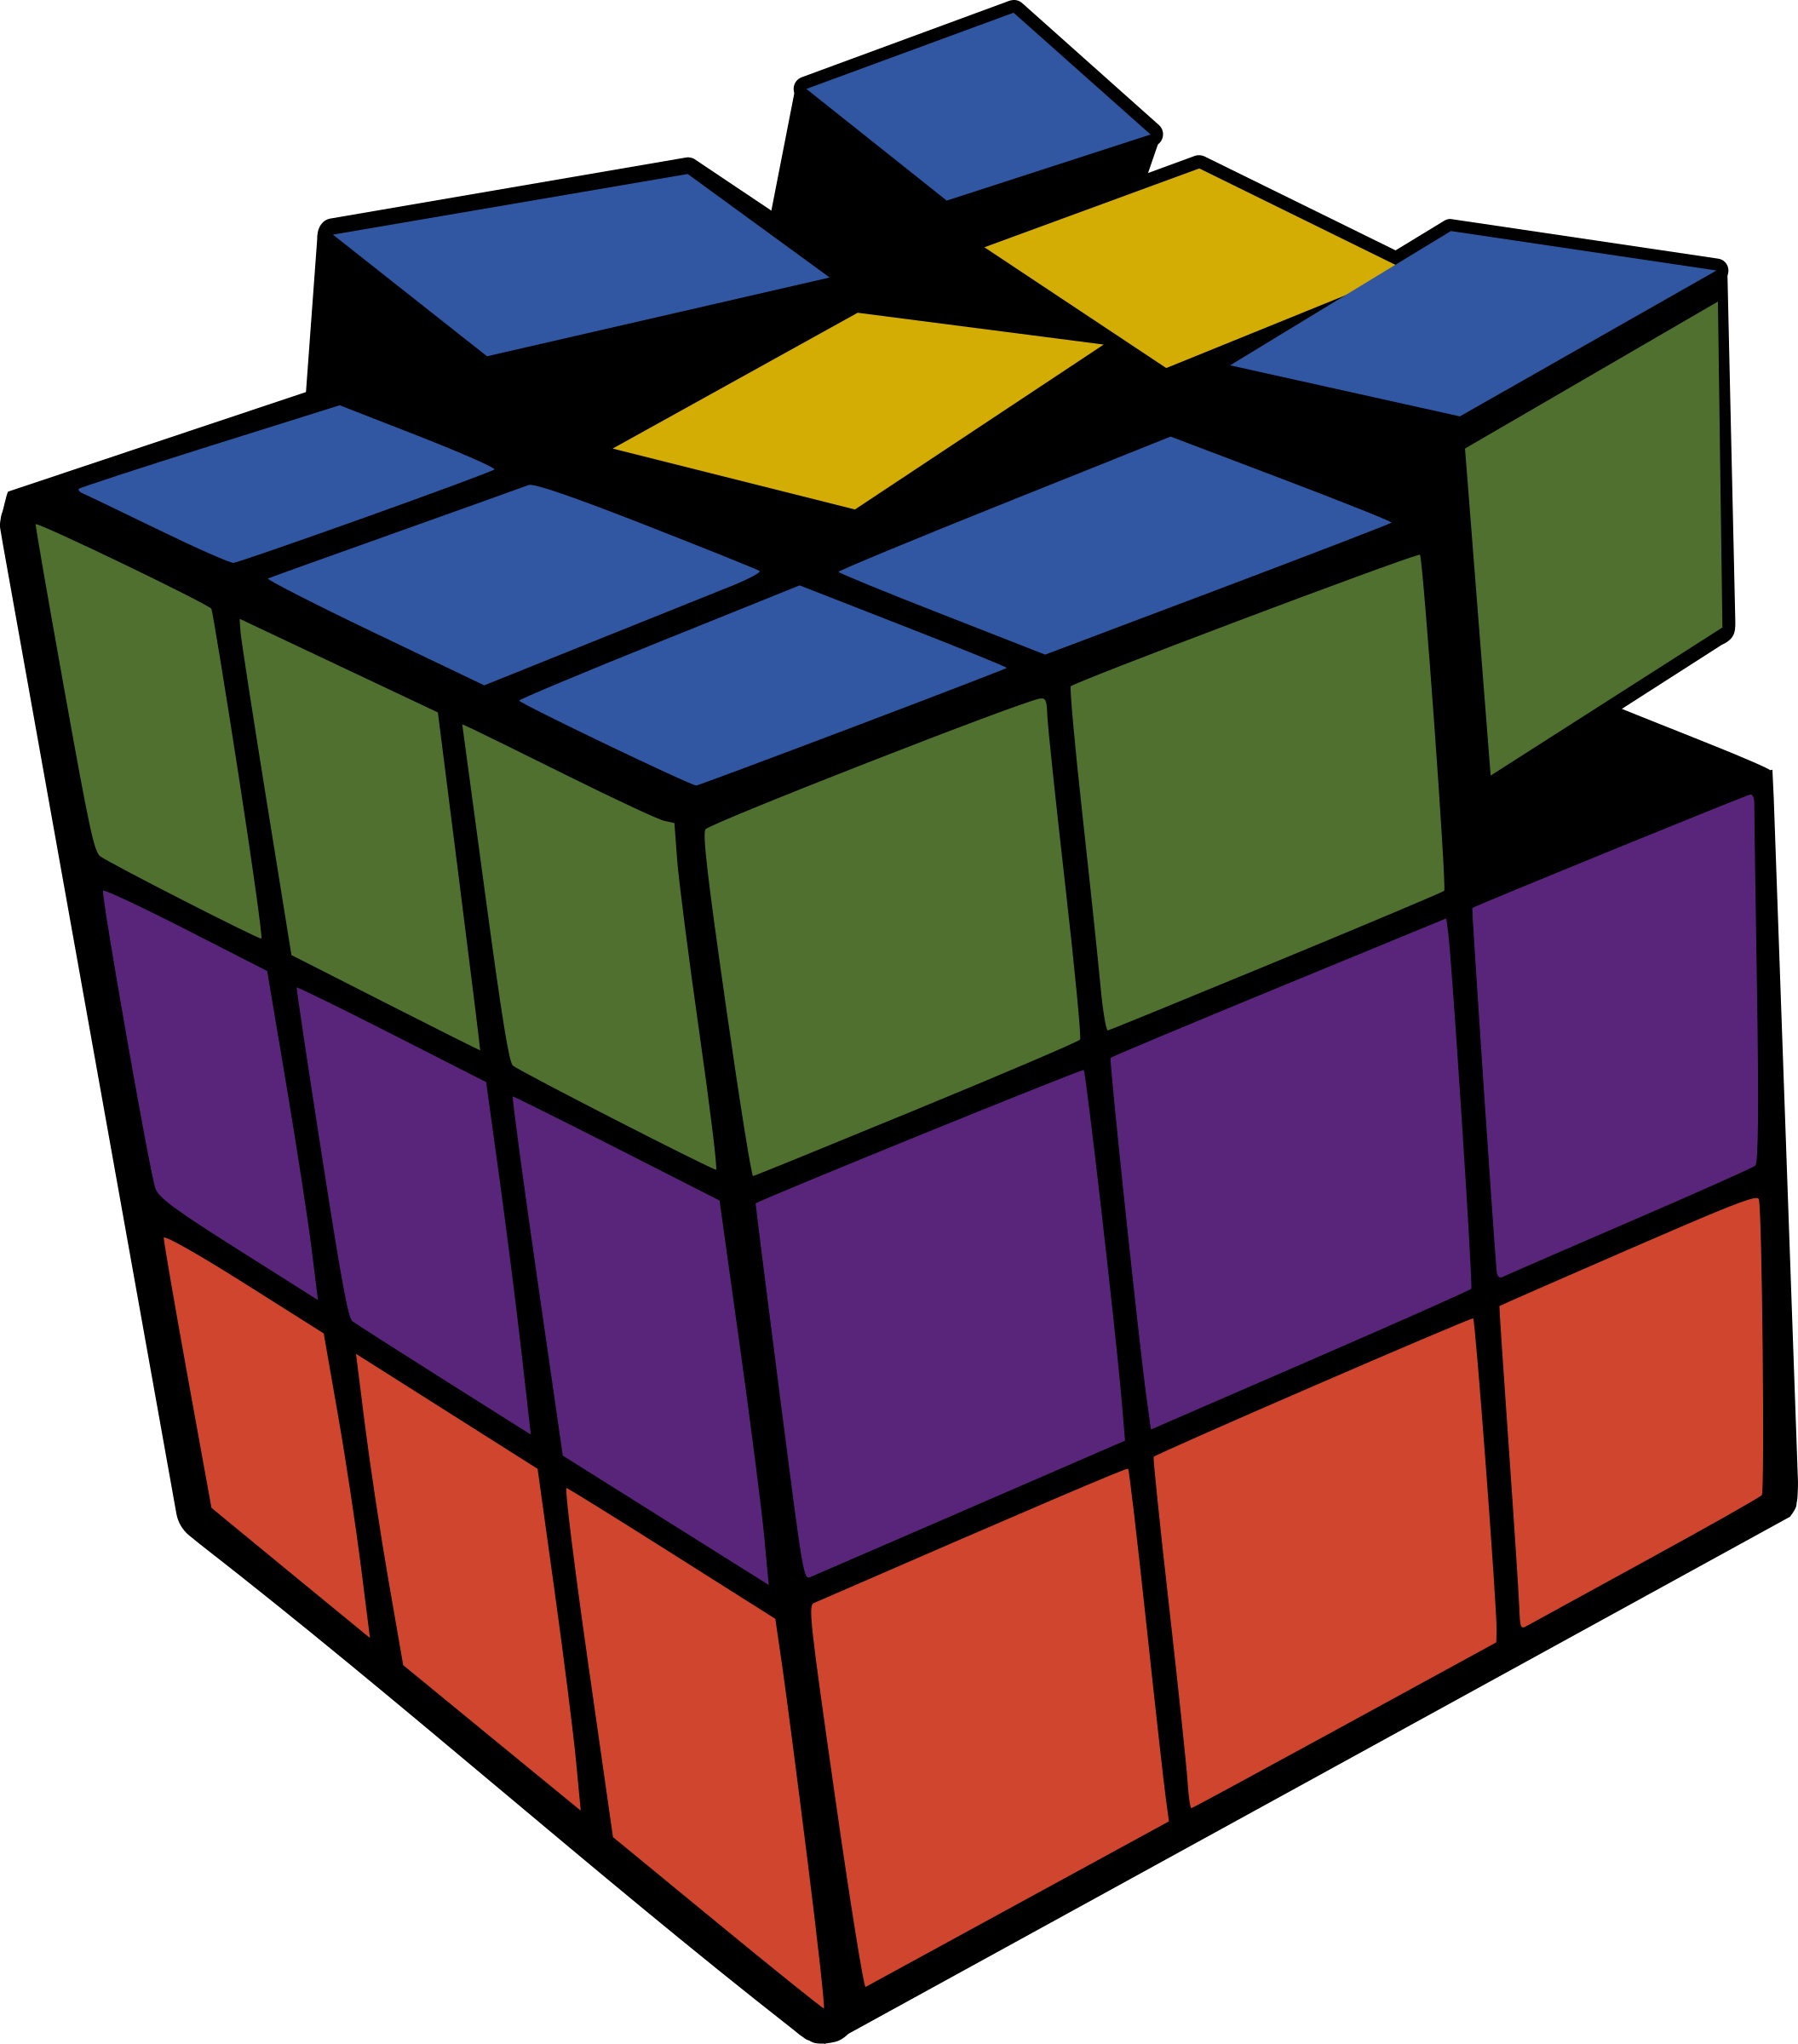 Puzzles clipart rubik's cube. Rubik d colored big